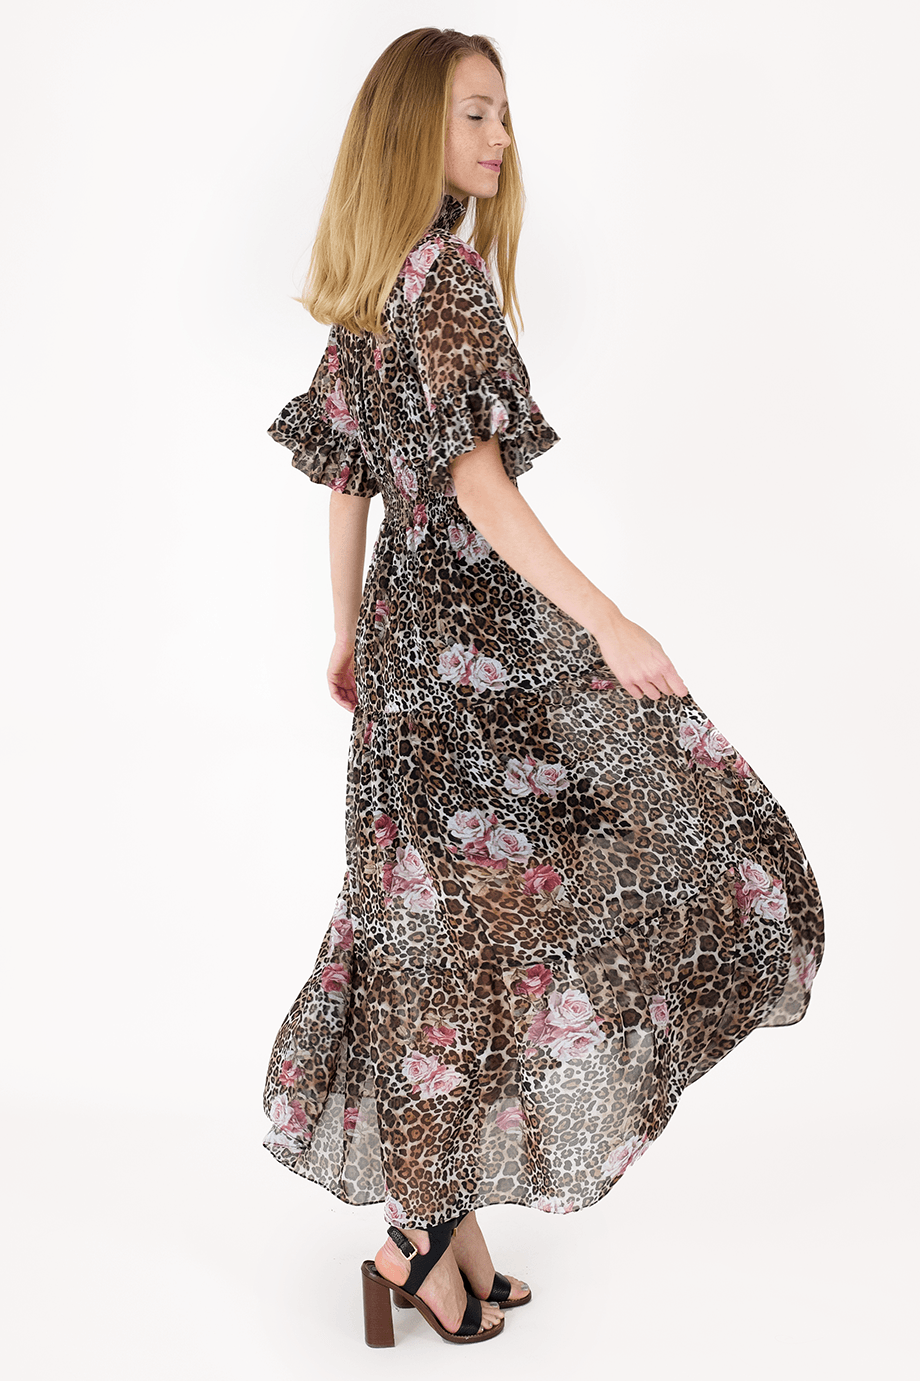 AW Animal Print Muslin Dress - Leopard - Elastic_02